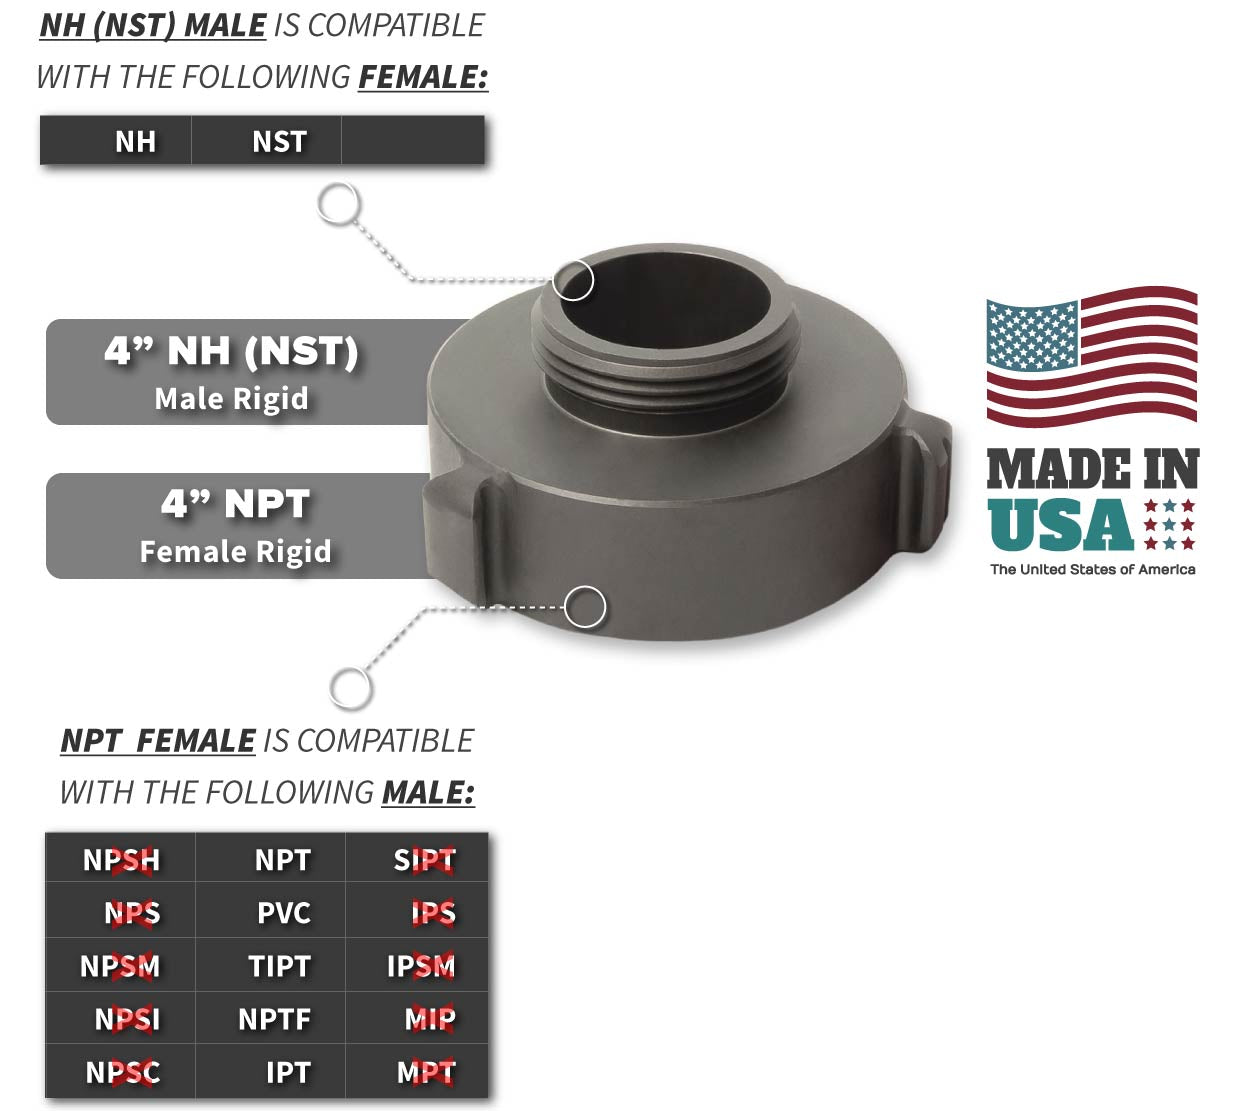 4 Inch NPT Female x 4 Inch NH-NST Male Compatibility Thread Chart